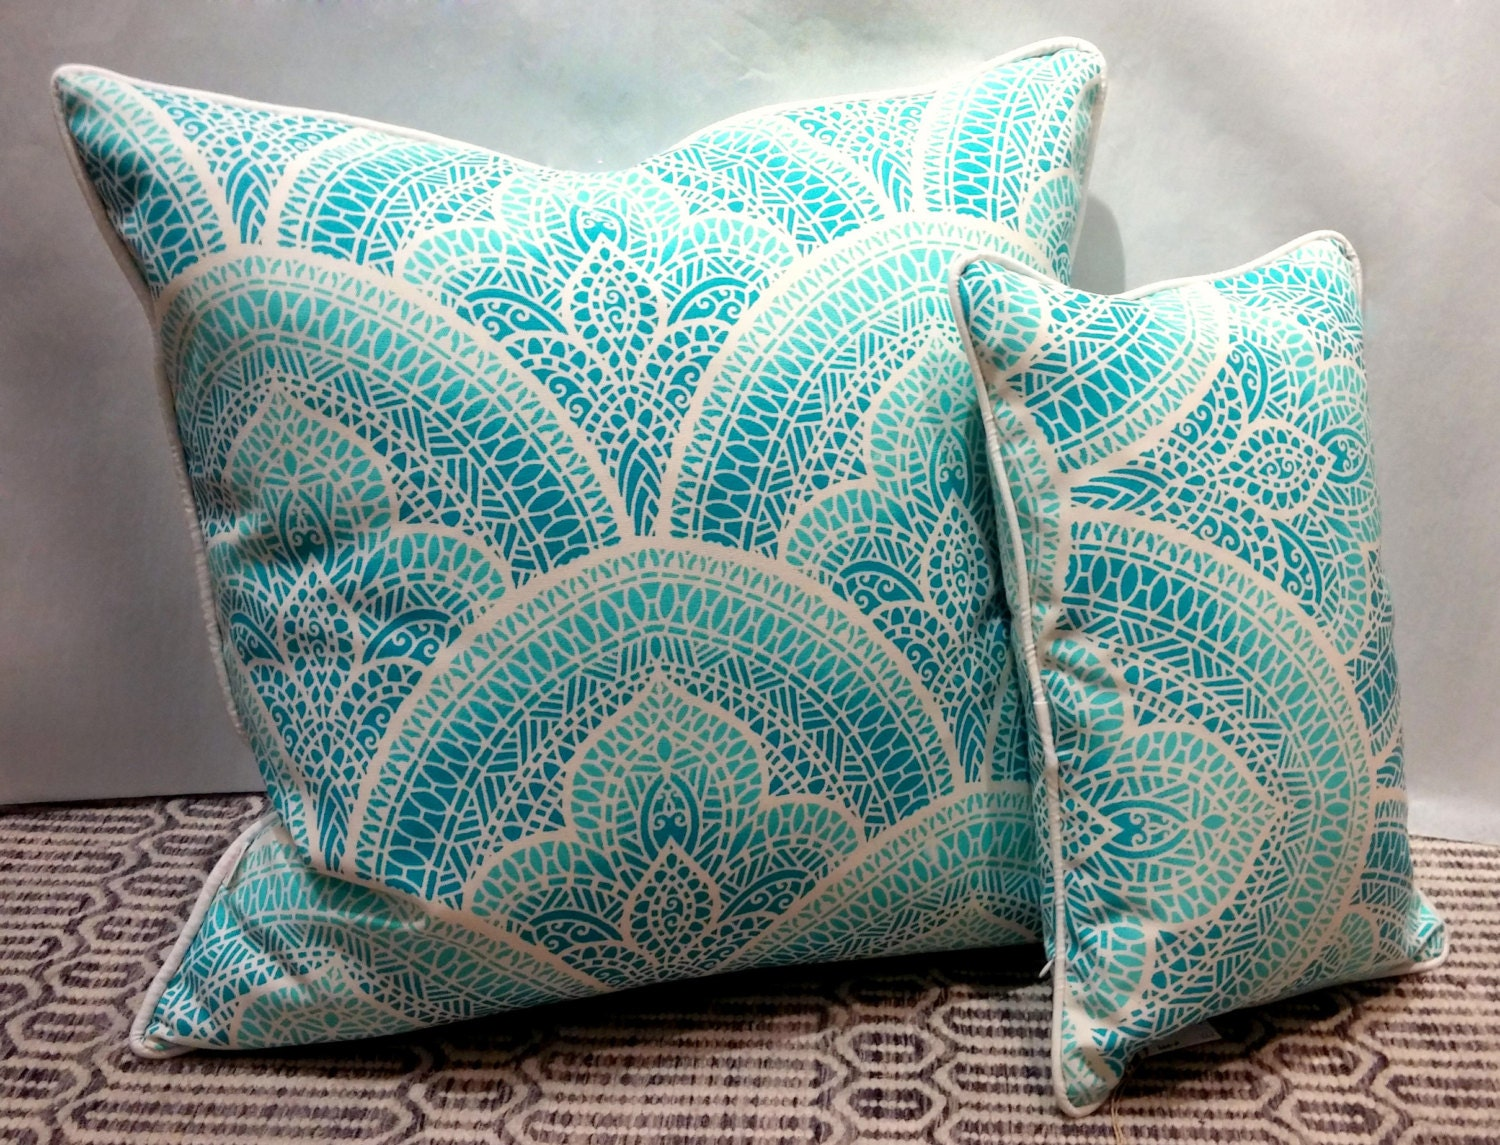 24x24 Indoor Outdoor Pillow Cover With Invisible Zipper Blue Mosaic